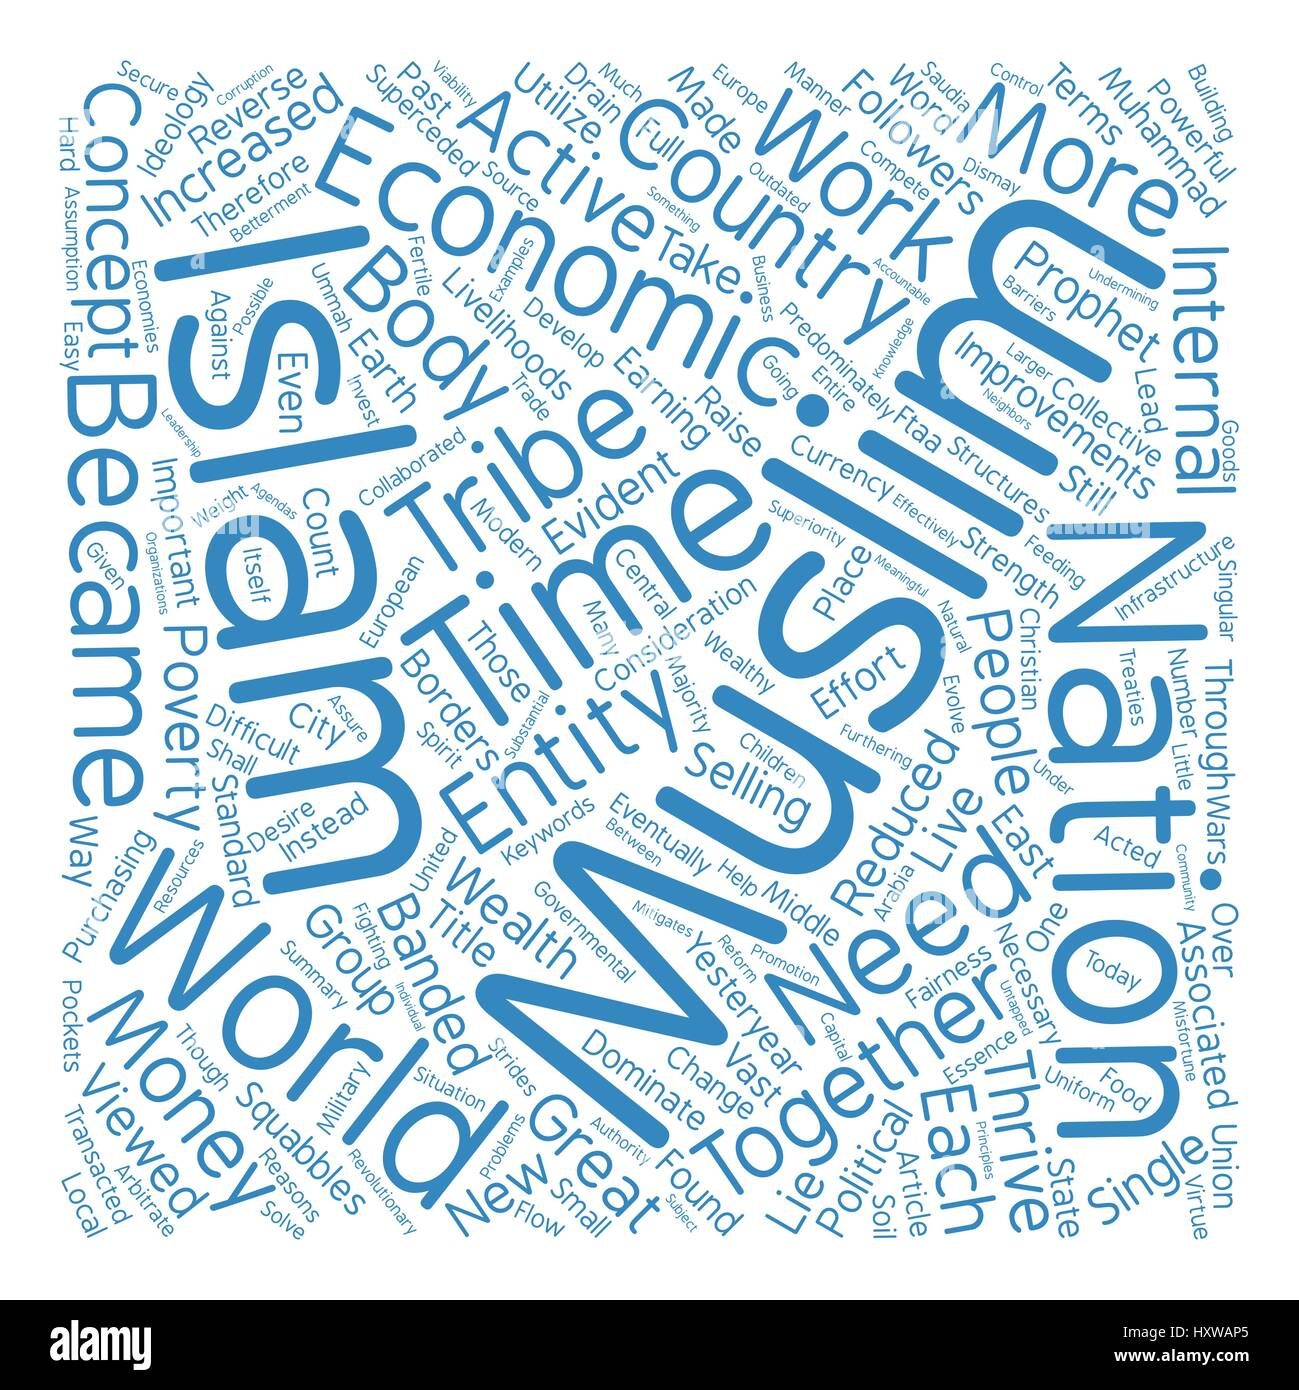 How to Raise the Muslim World from Poverty text background word cloud concept - Stock Image